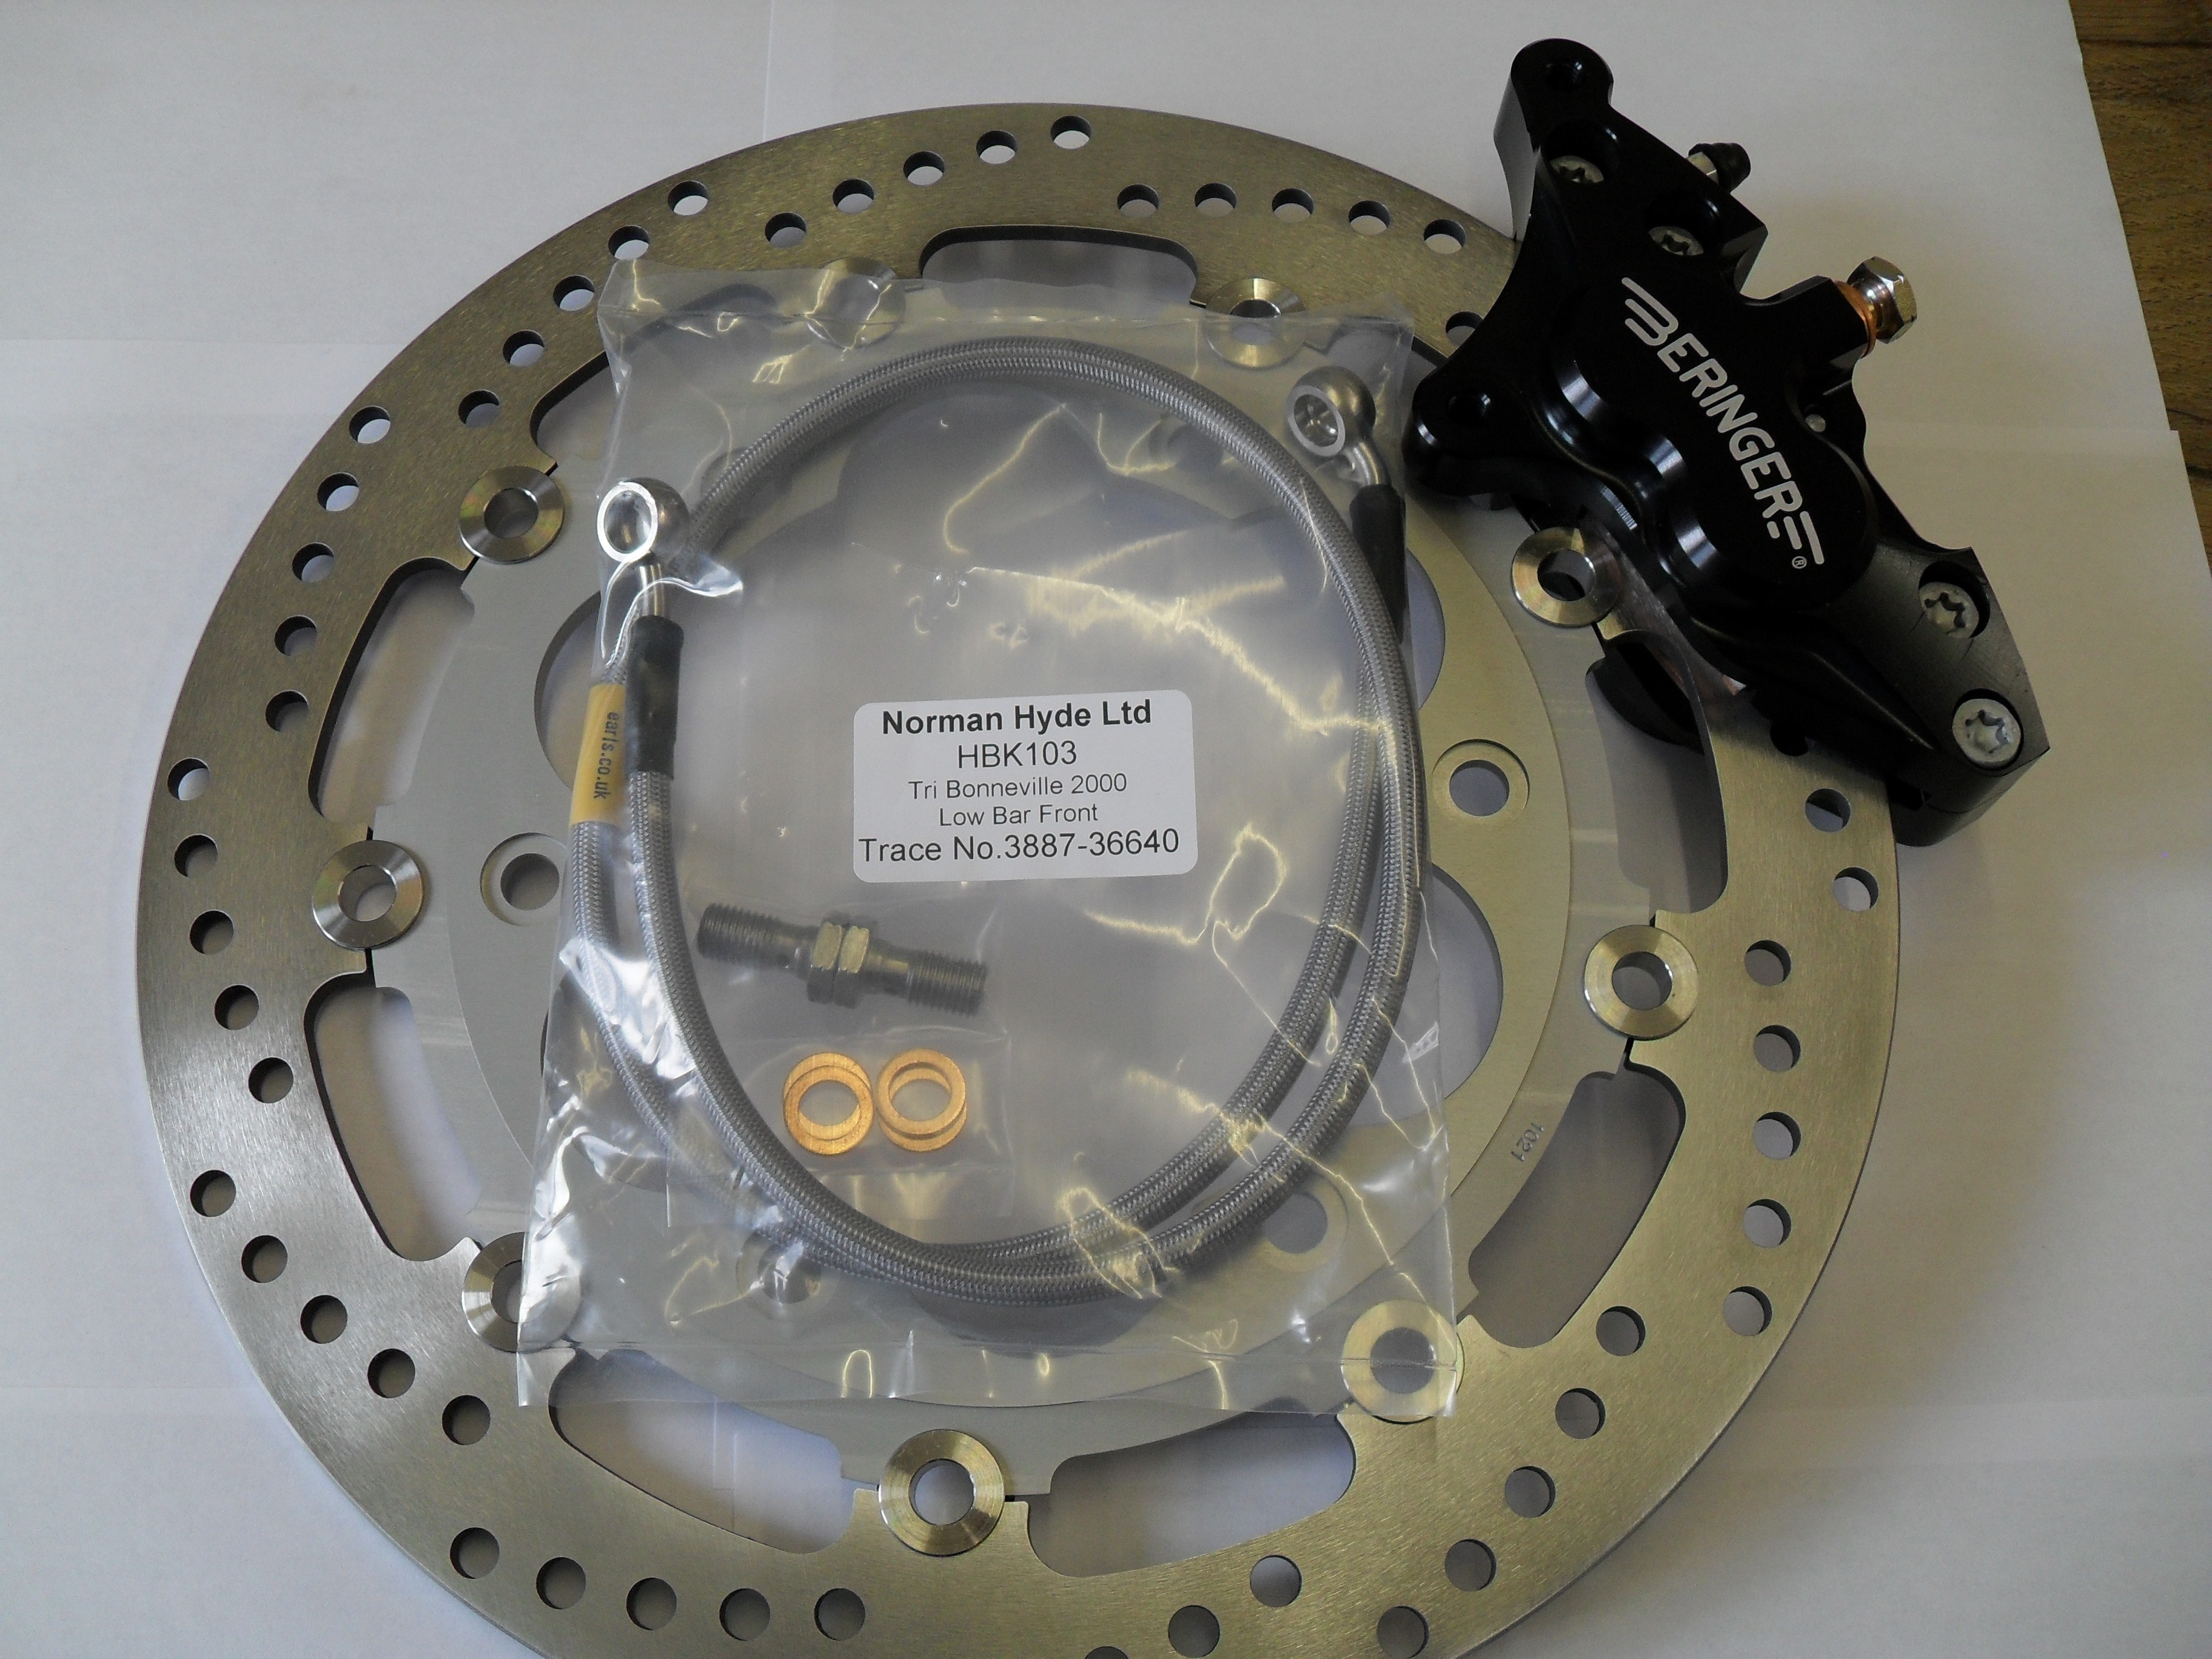 Full brake conversion kit consisting